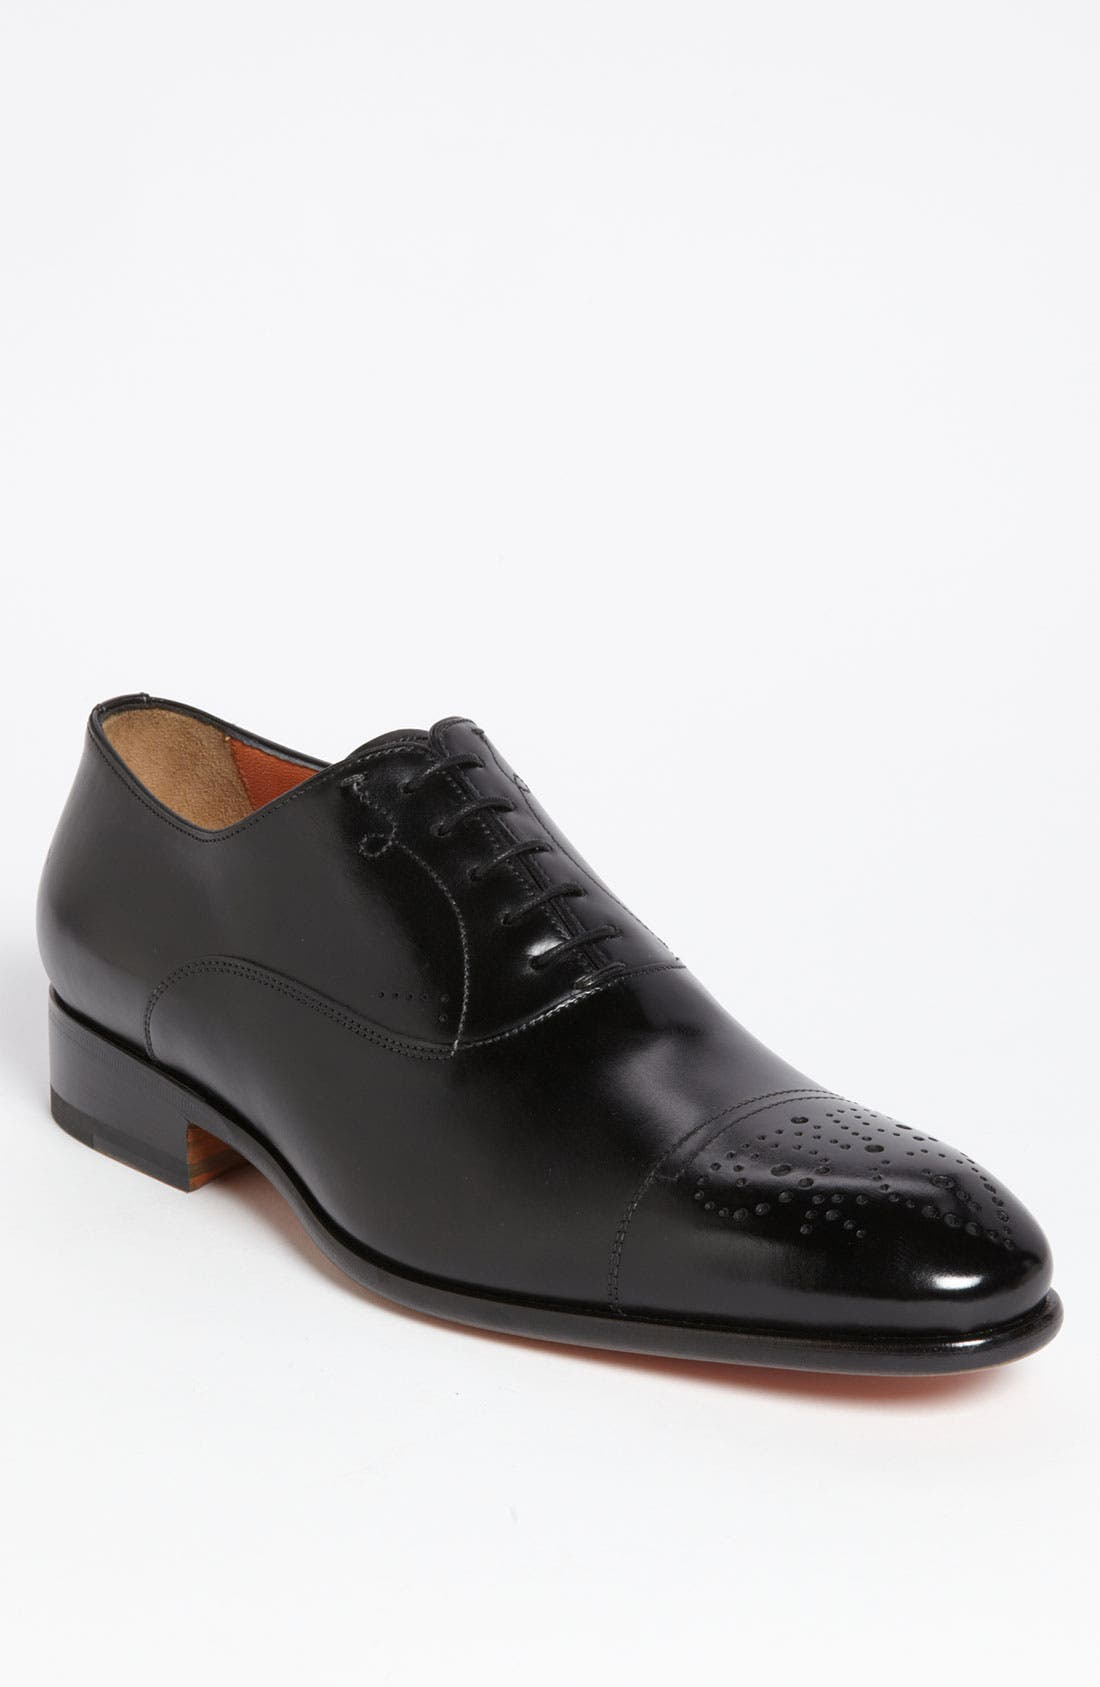 Alternate Image 1 Selected - Santoni 'Stafford' Cap Toe Oxford (Men)